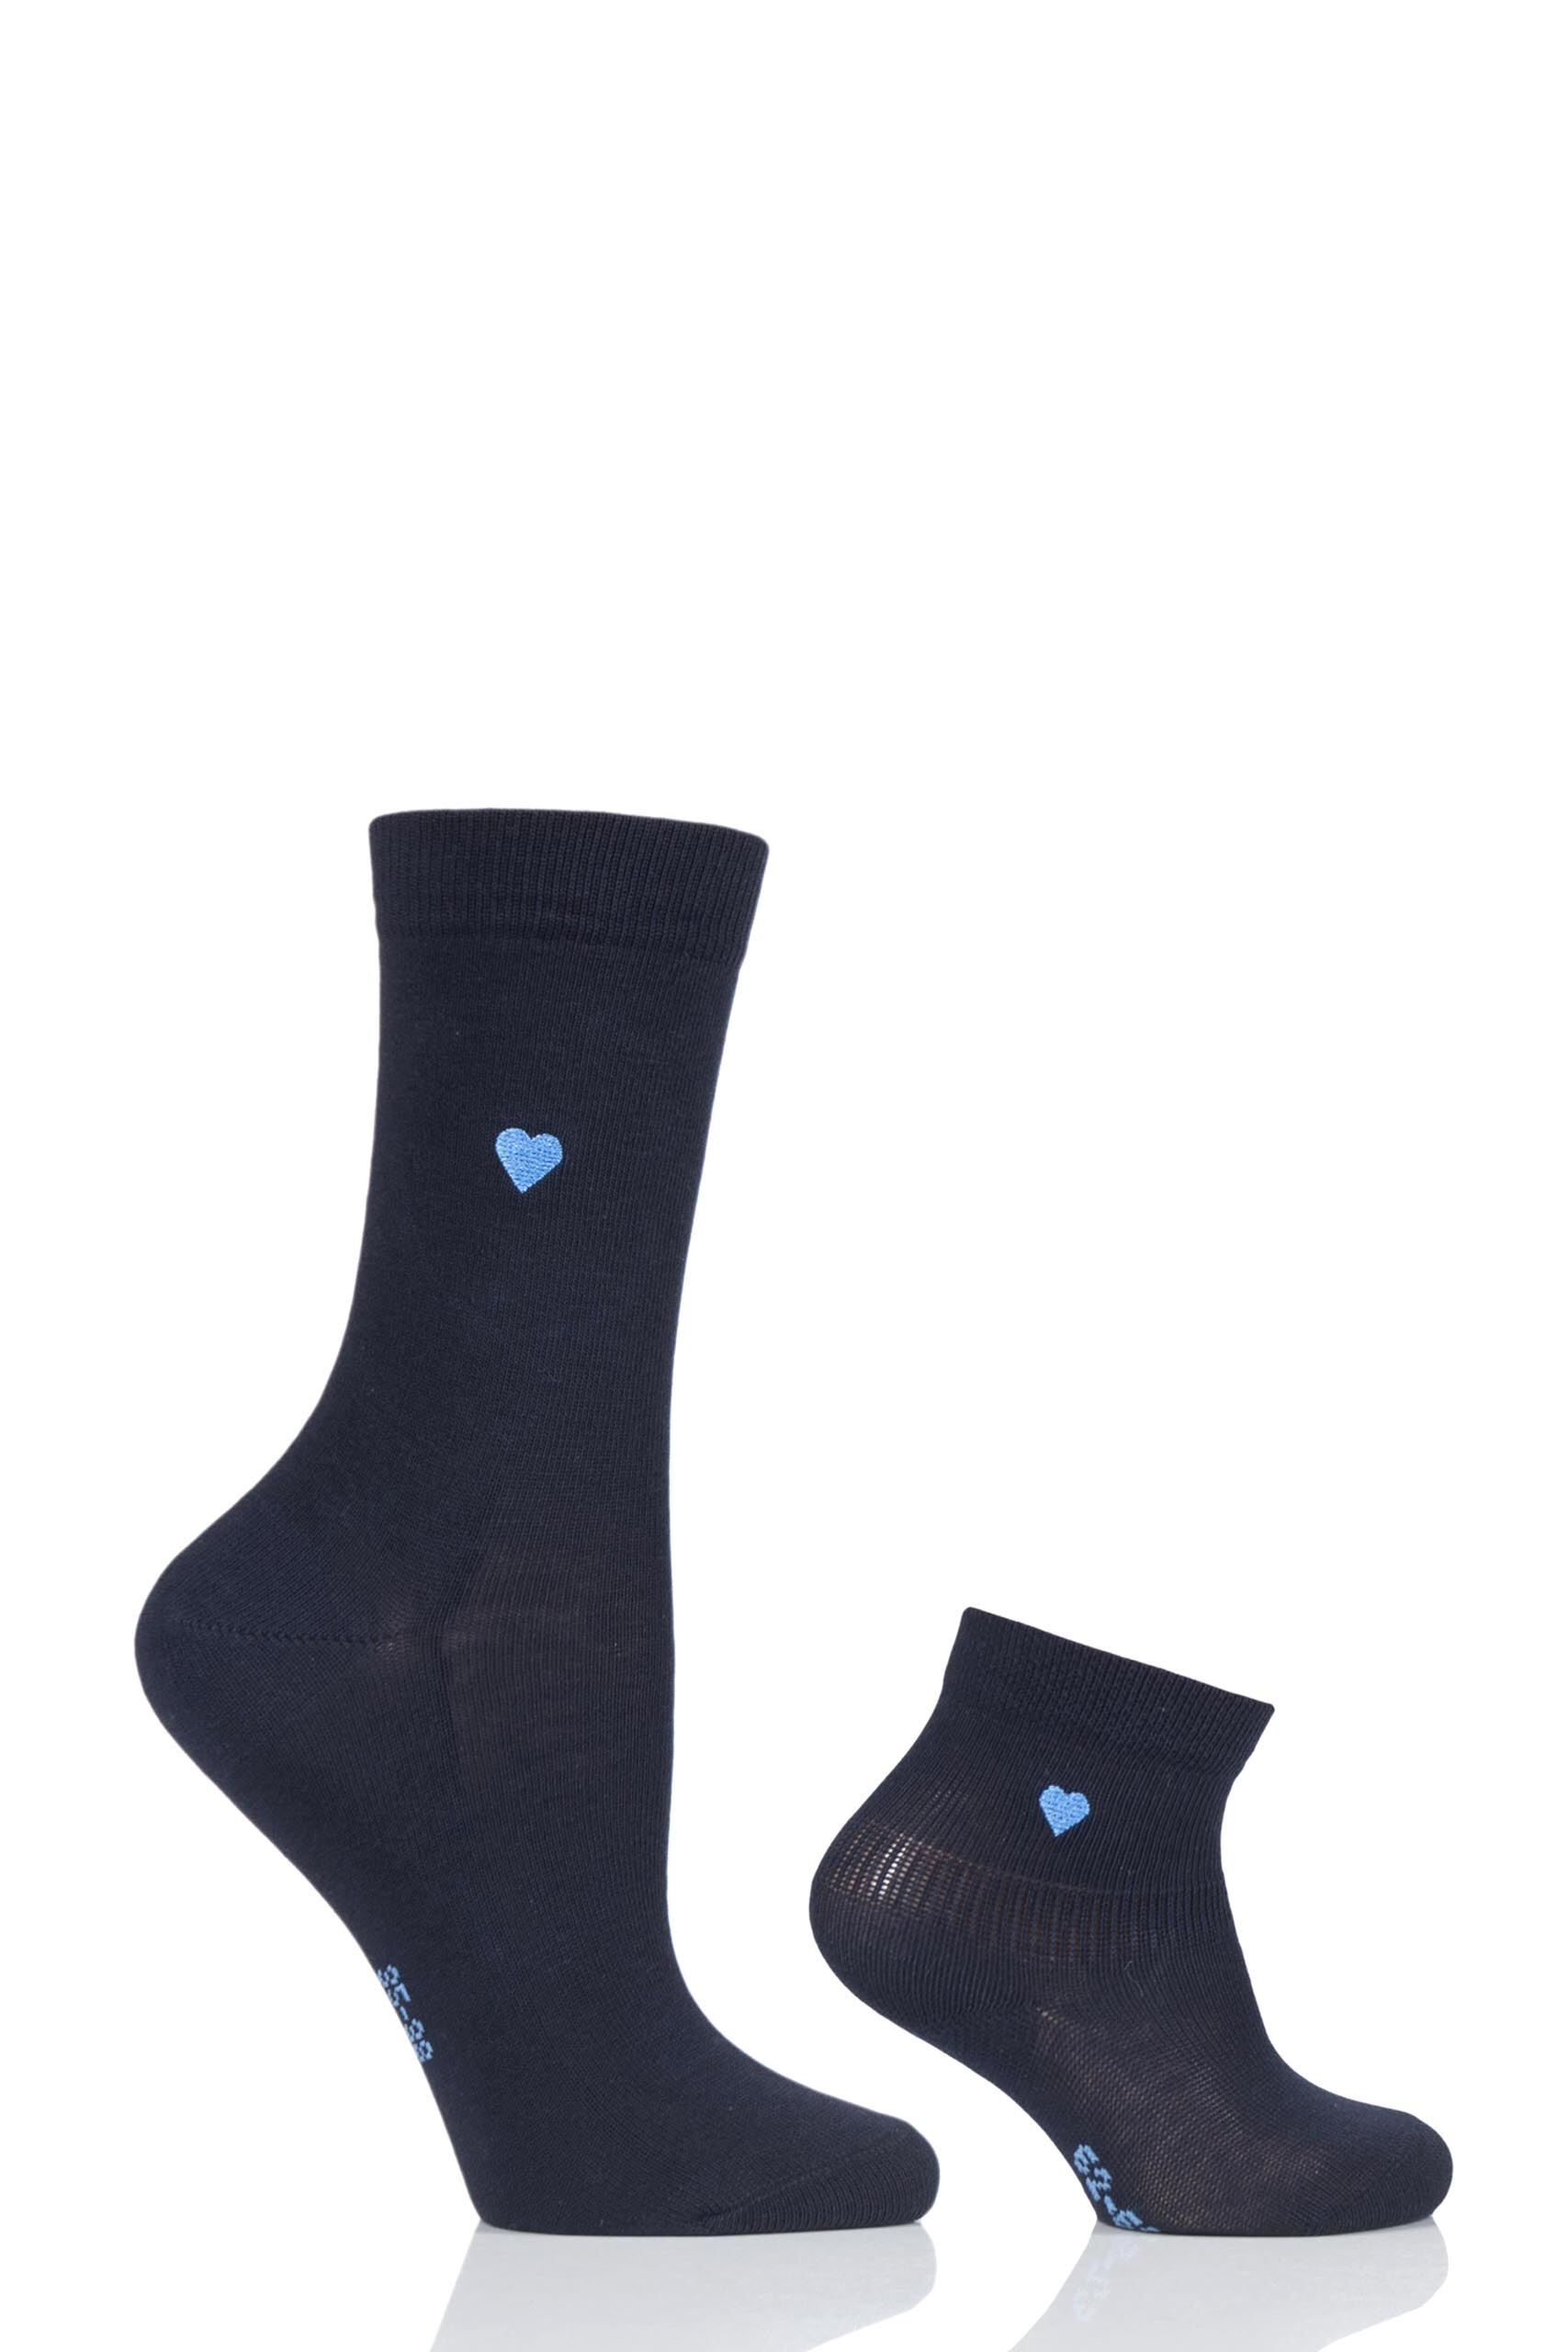 Image of 1 Pack Navy Mini Me Set Woand Babies Matching Socks Ladies and Kids 2.5-5 Ladies (1-6 Months Baby) - Falke